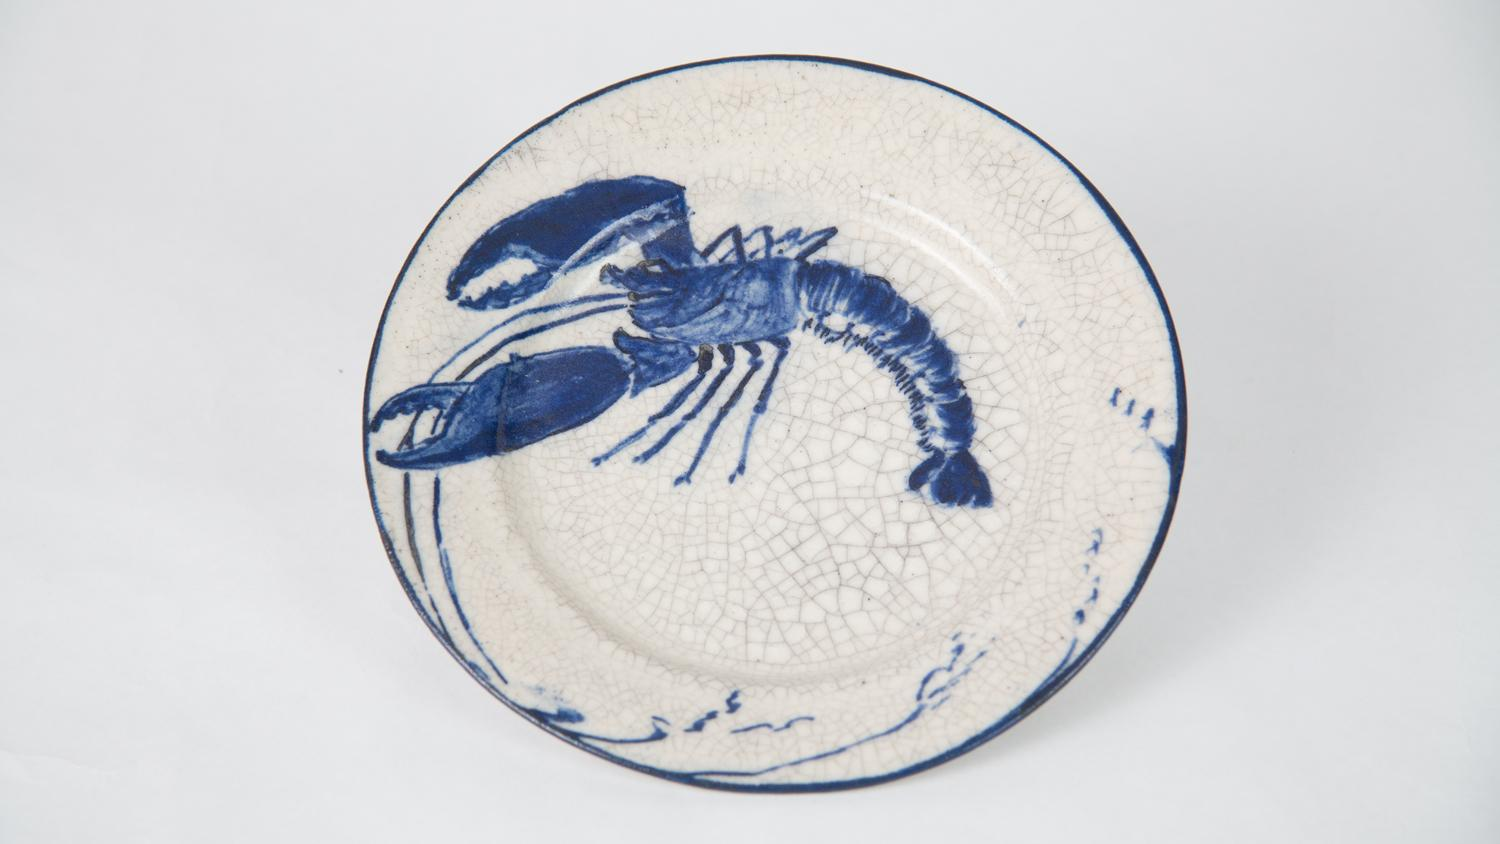 Bread and Butter Plate with Lobster Design, Dedham Pottery, ca. 1900, stoneware, 1980-4-115, Gift of Department of Ceramic Engineering, UIUC, C.W. Parmelee Collection